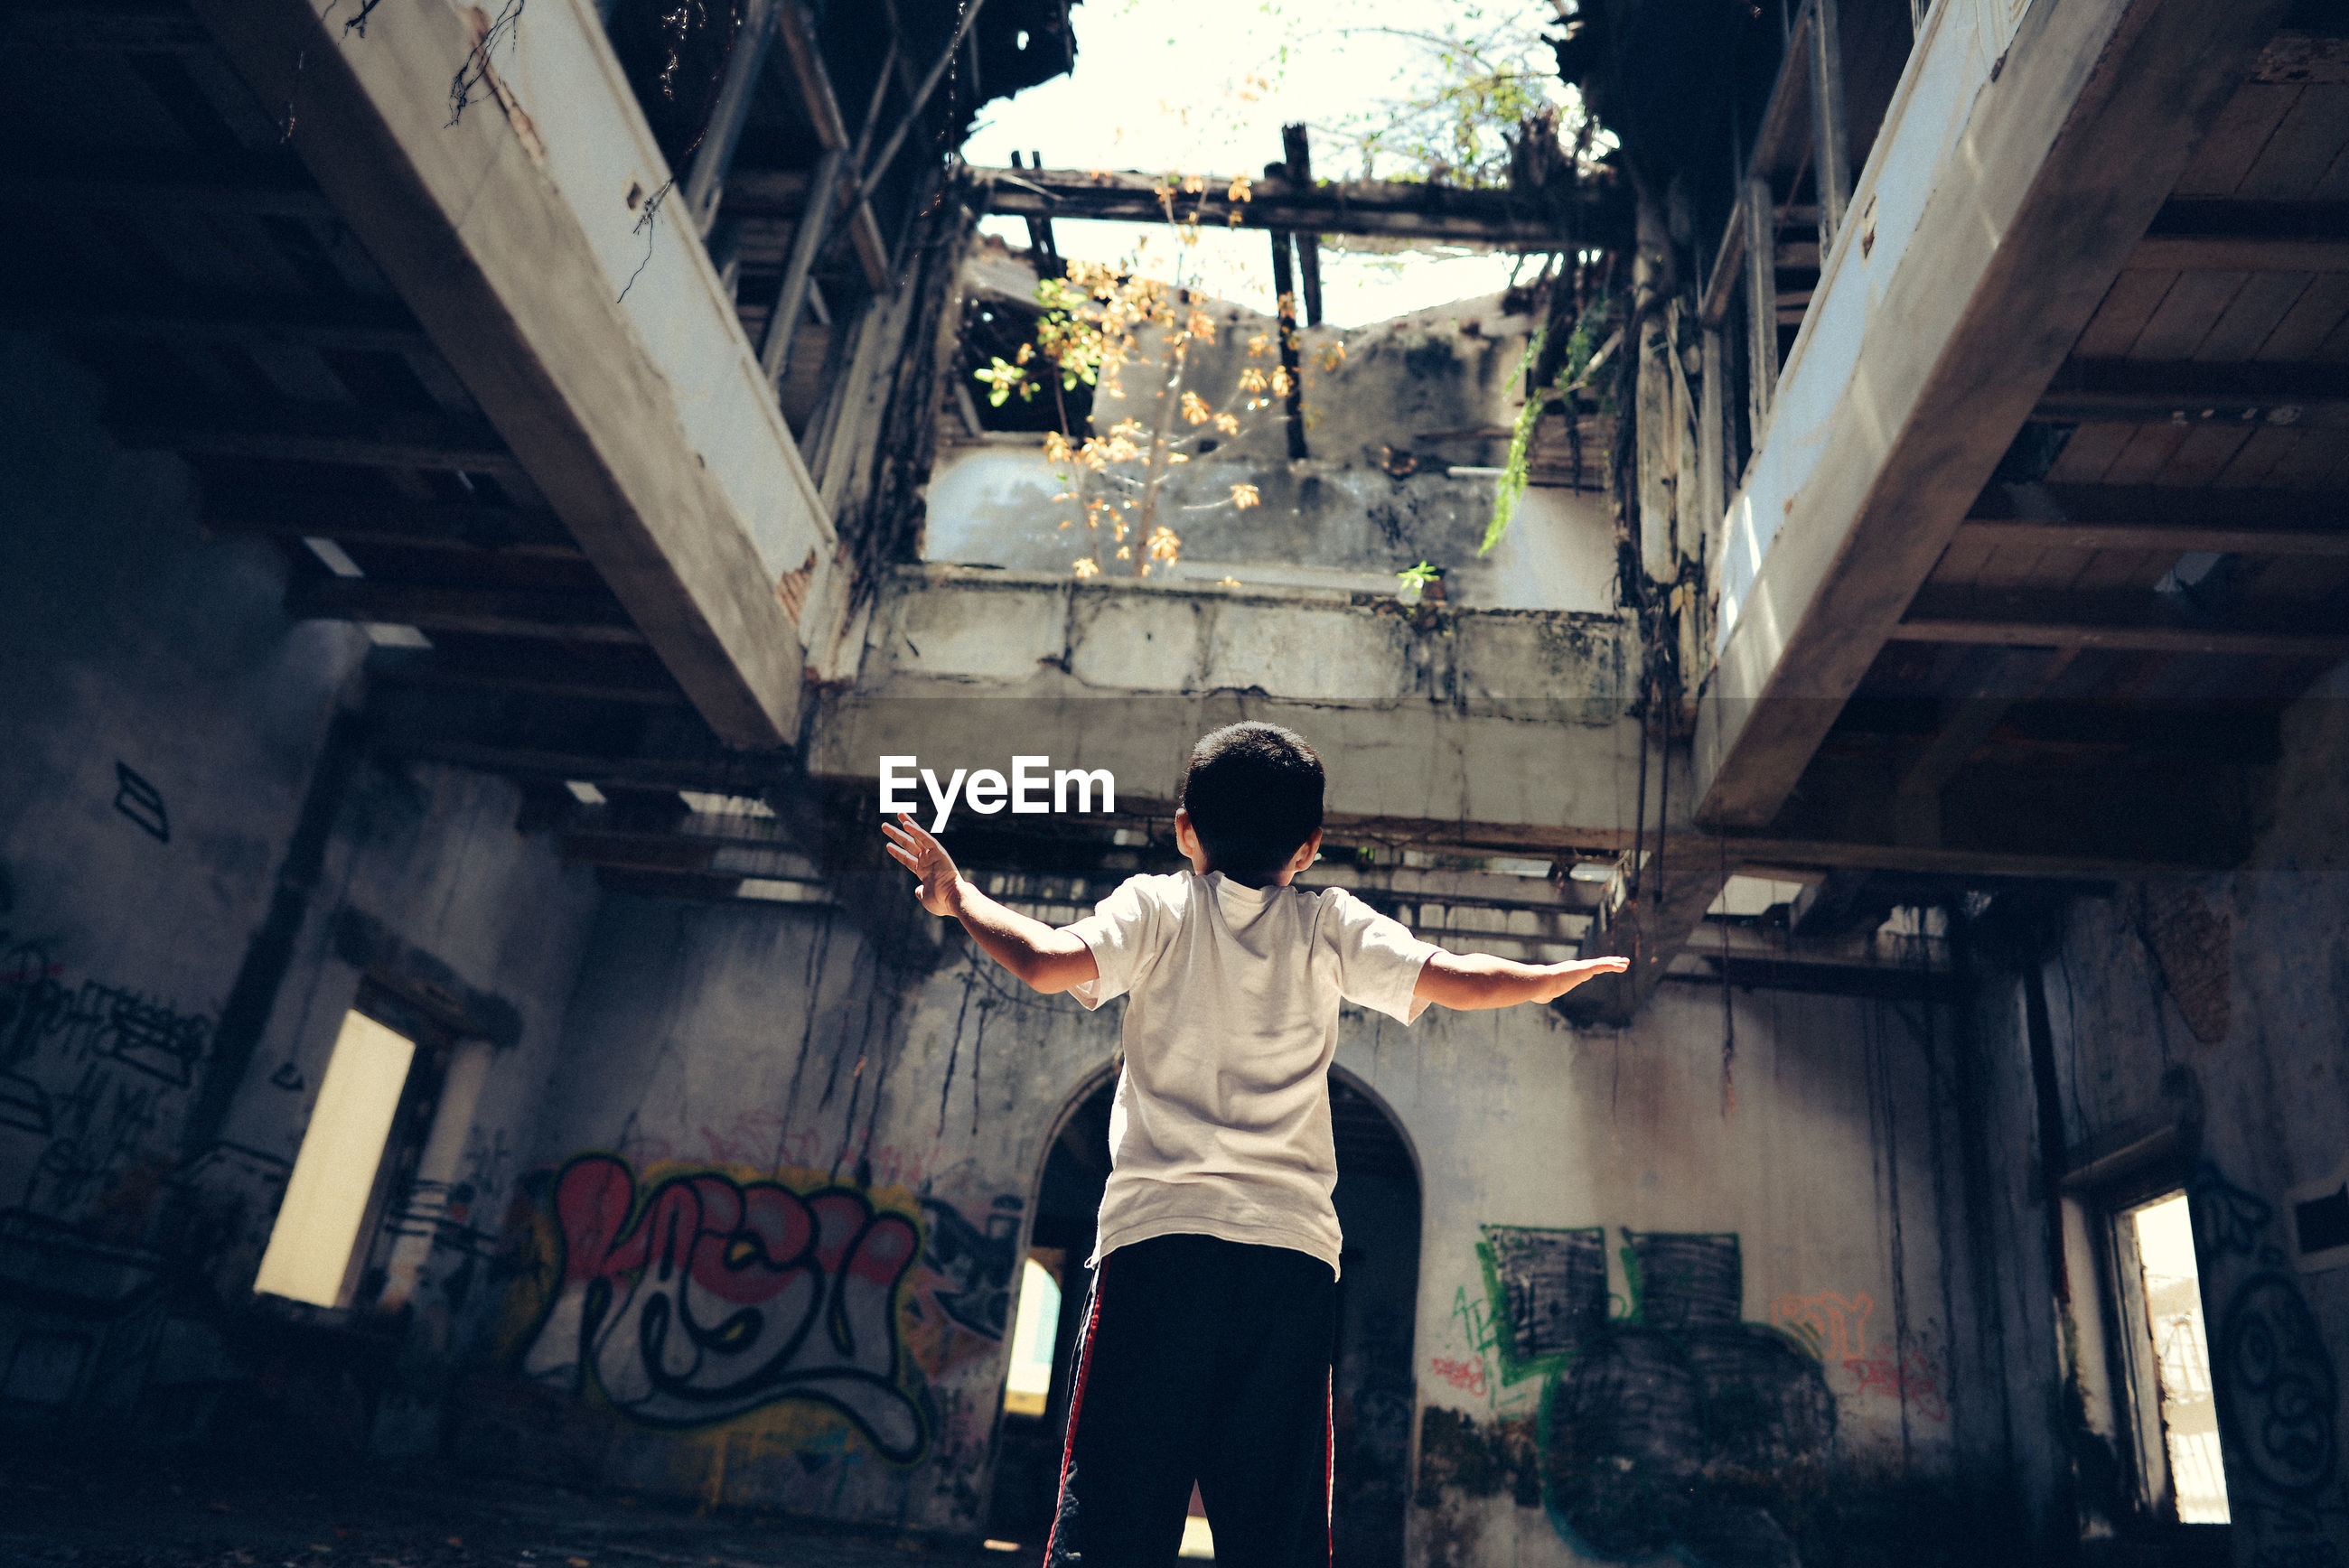 Rear view of boy standing at abandoned building